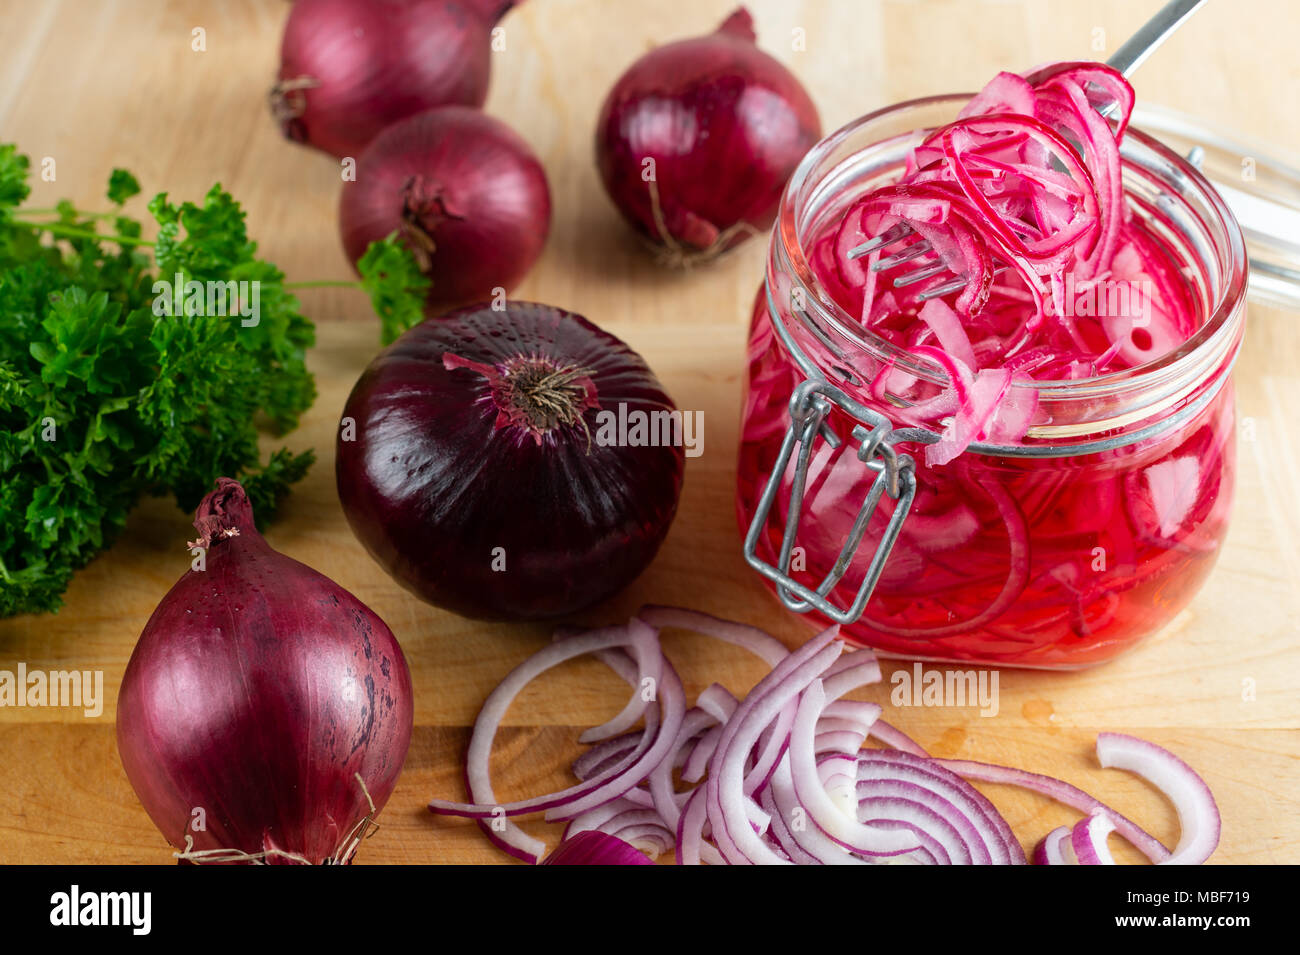 Homemade pickled sliced red onion. - Stock Image